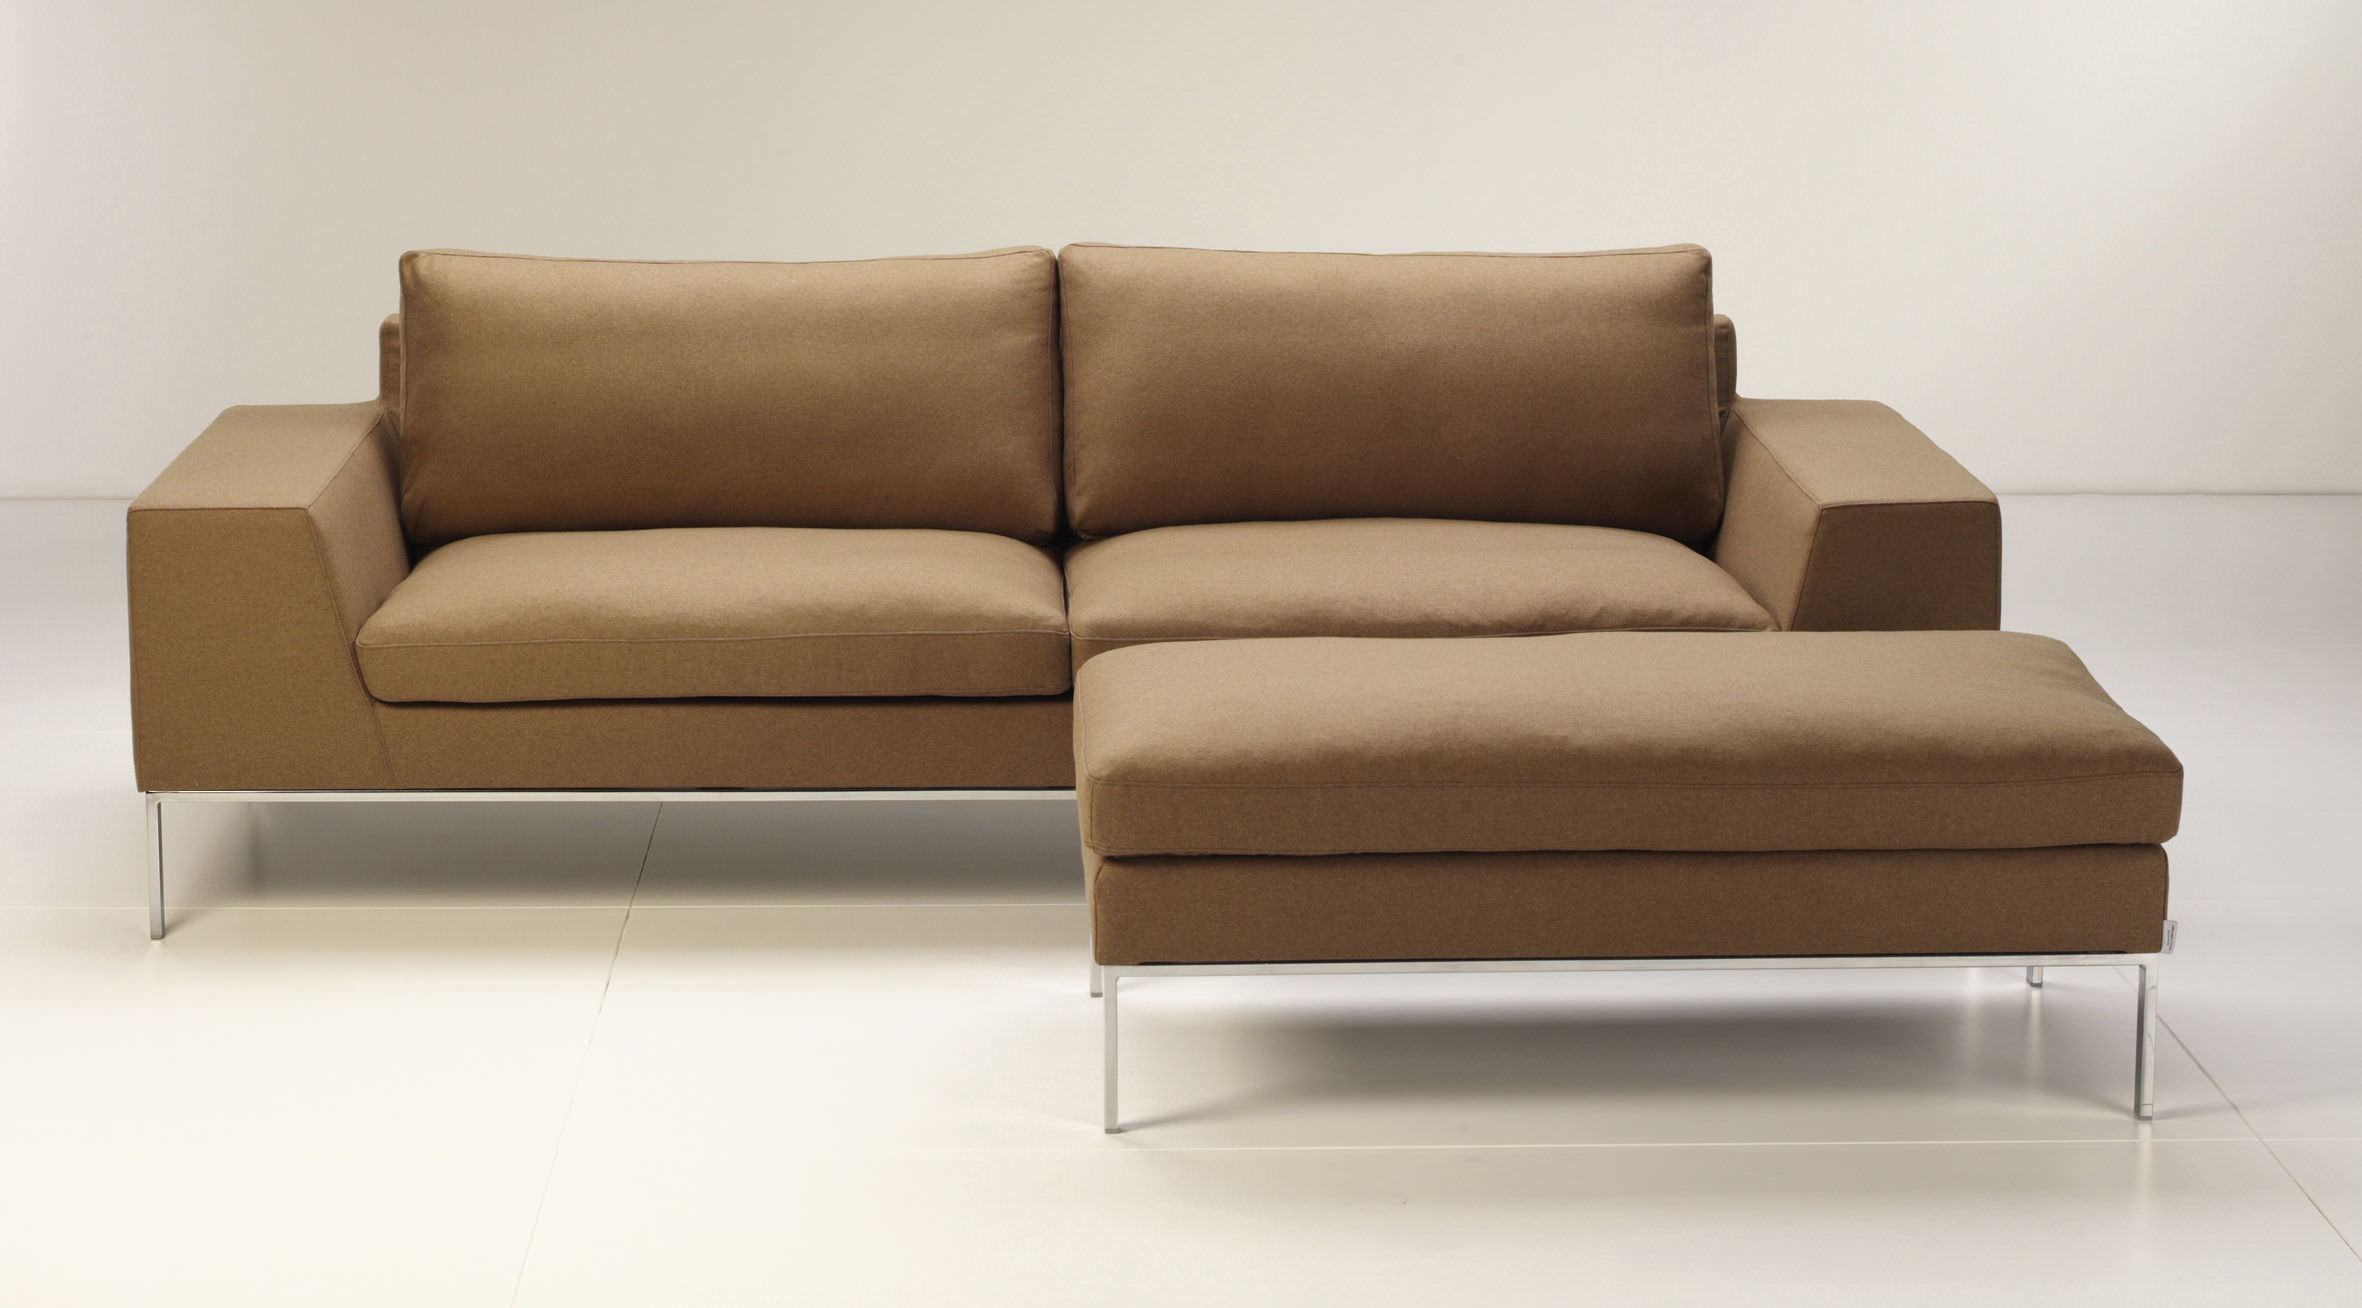 contemporary sofa / leather / 2-seater / white - si-t-114jus PADOGPI